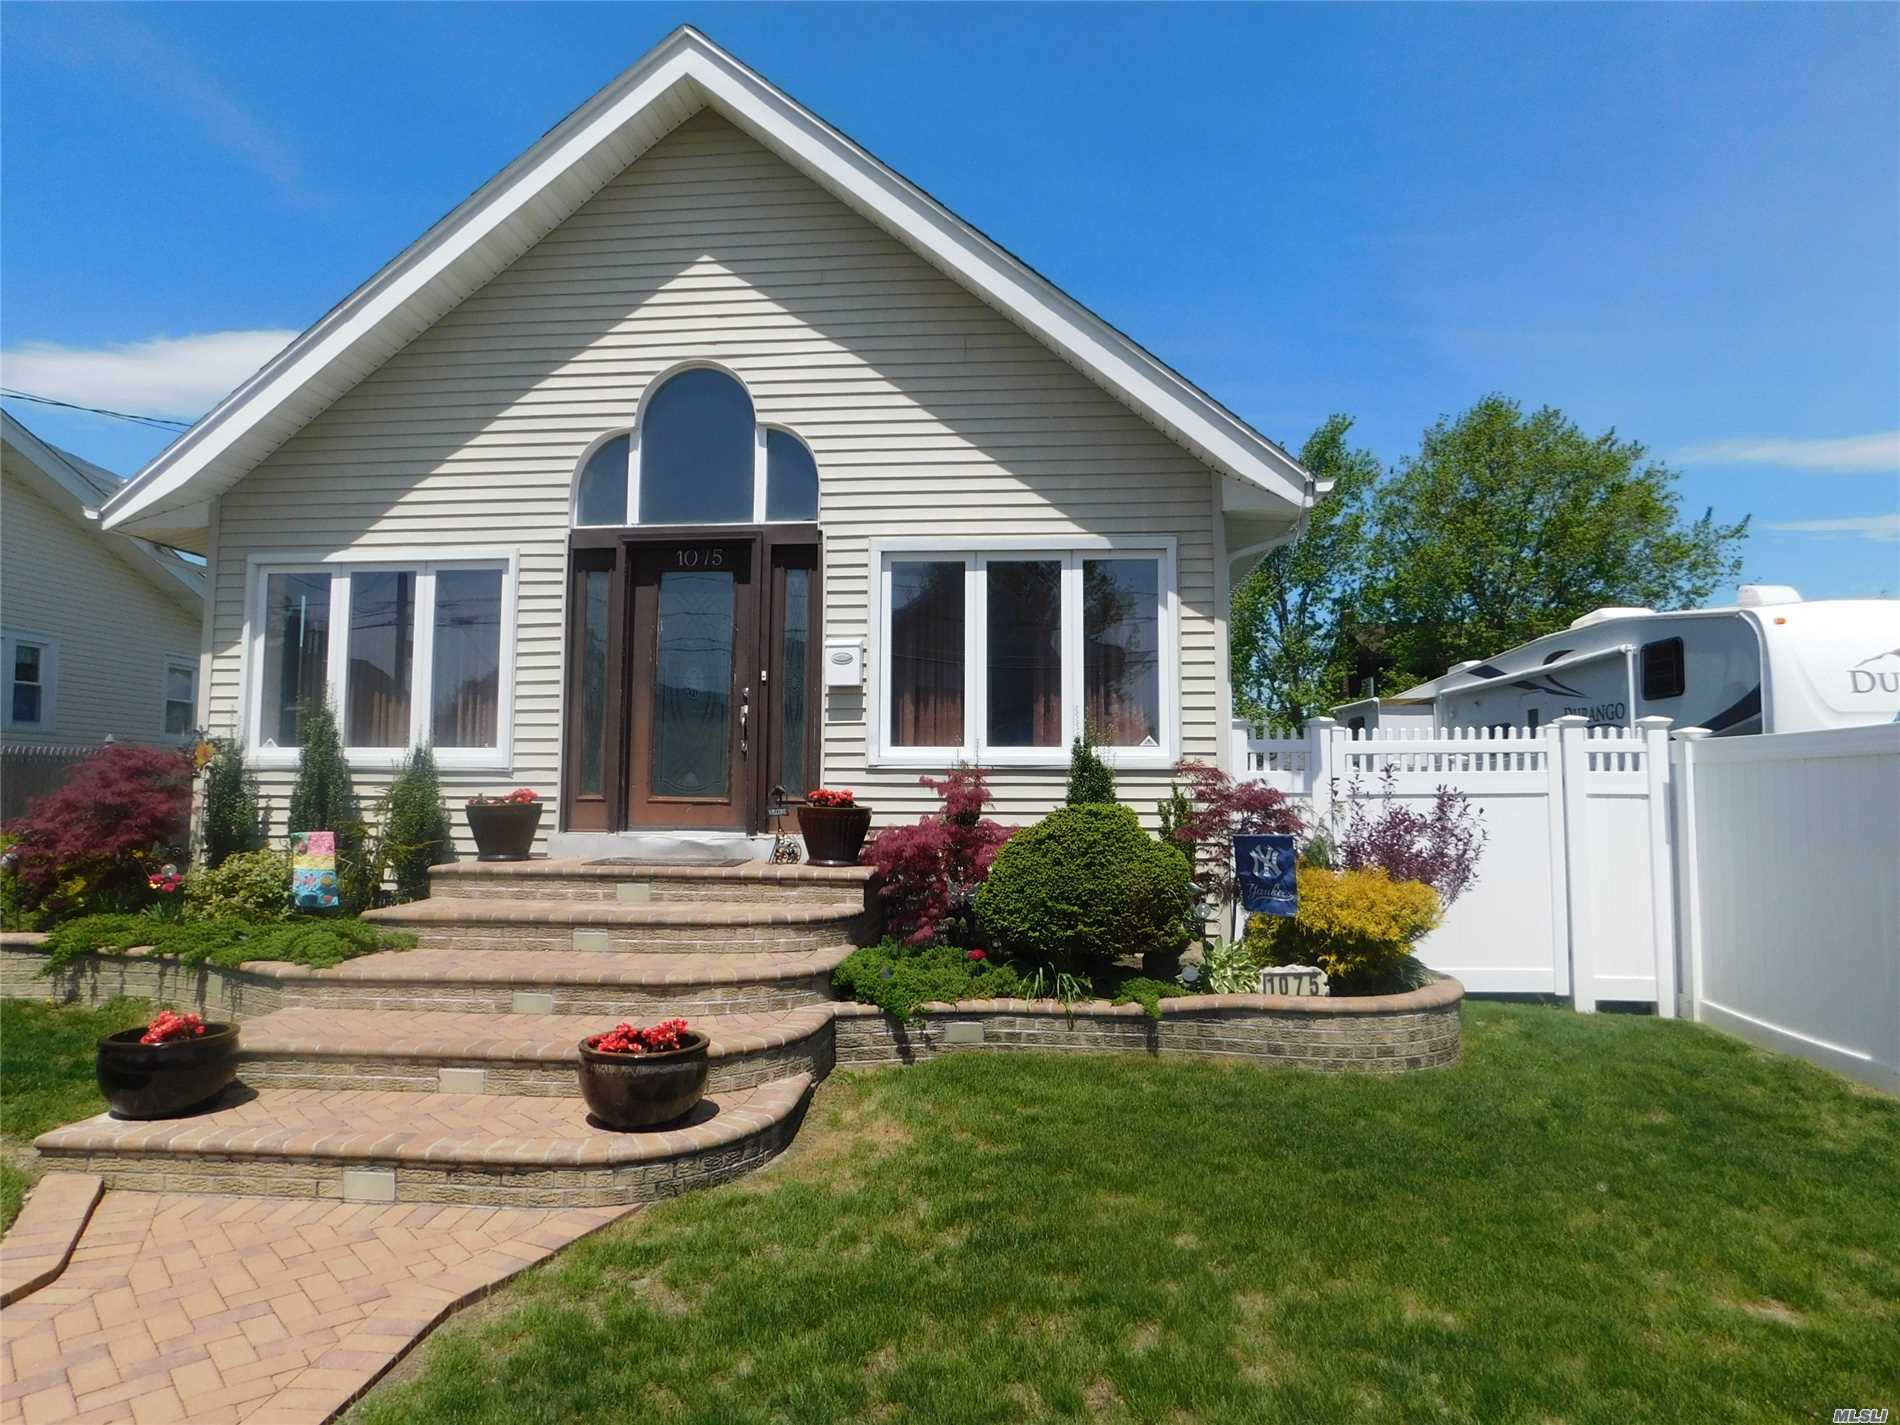 Photo of home for sale at 1075 Van Buren St, Baldwin NY